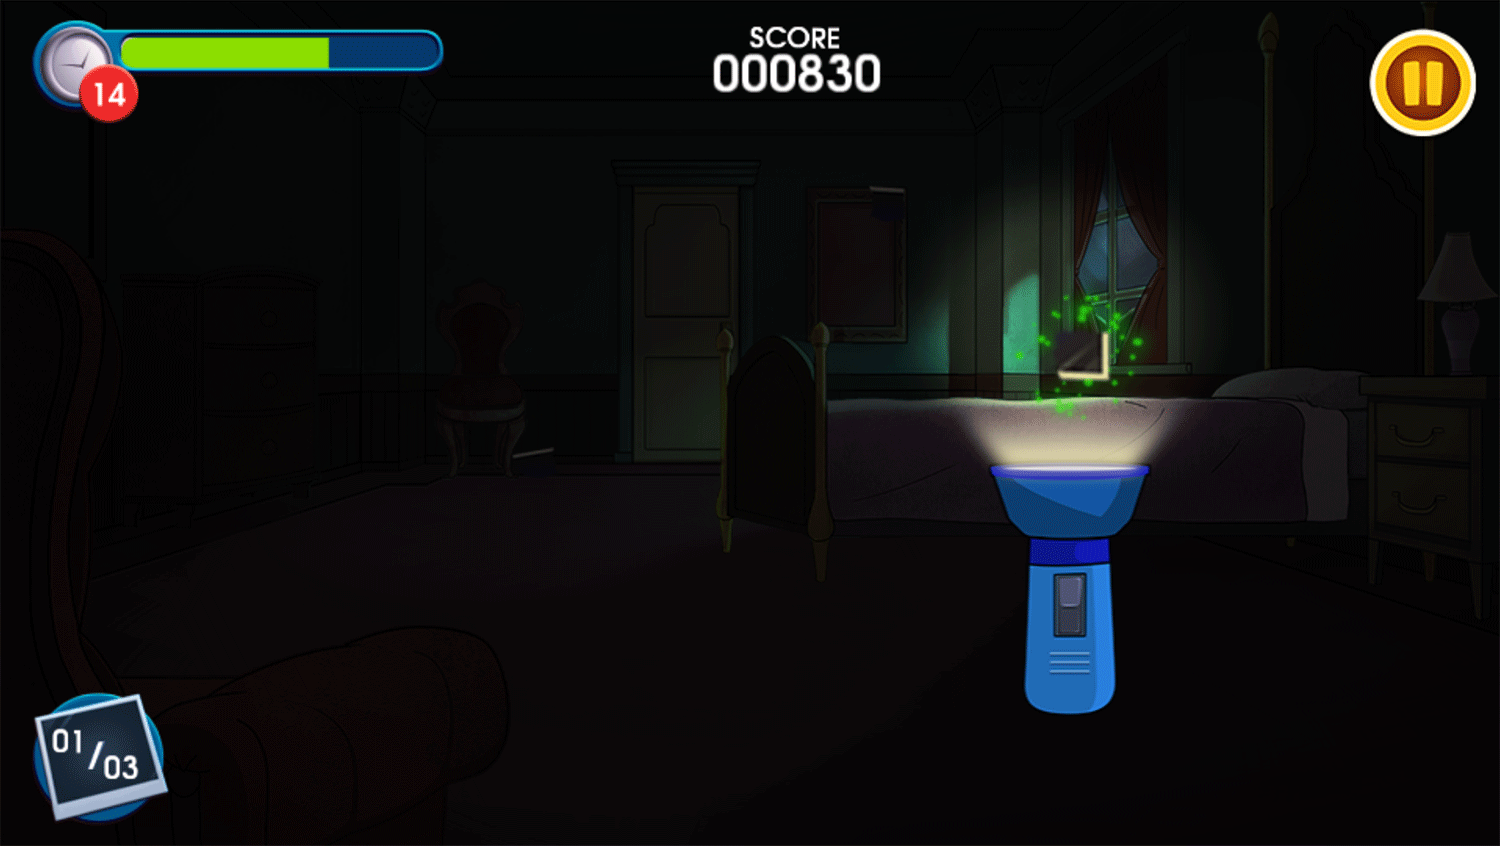 Be Cool Scooby Doo the Mysterious Mansion Find Clues Game Screenshot.